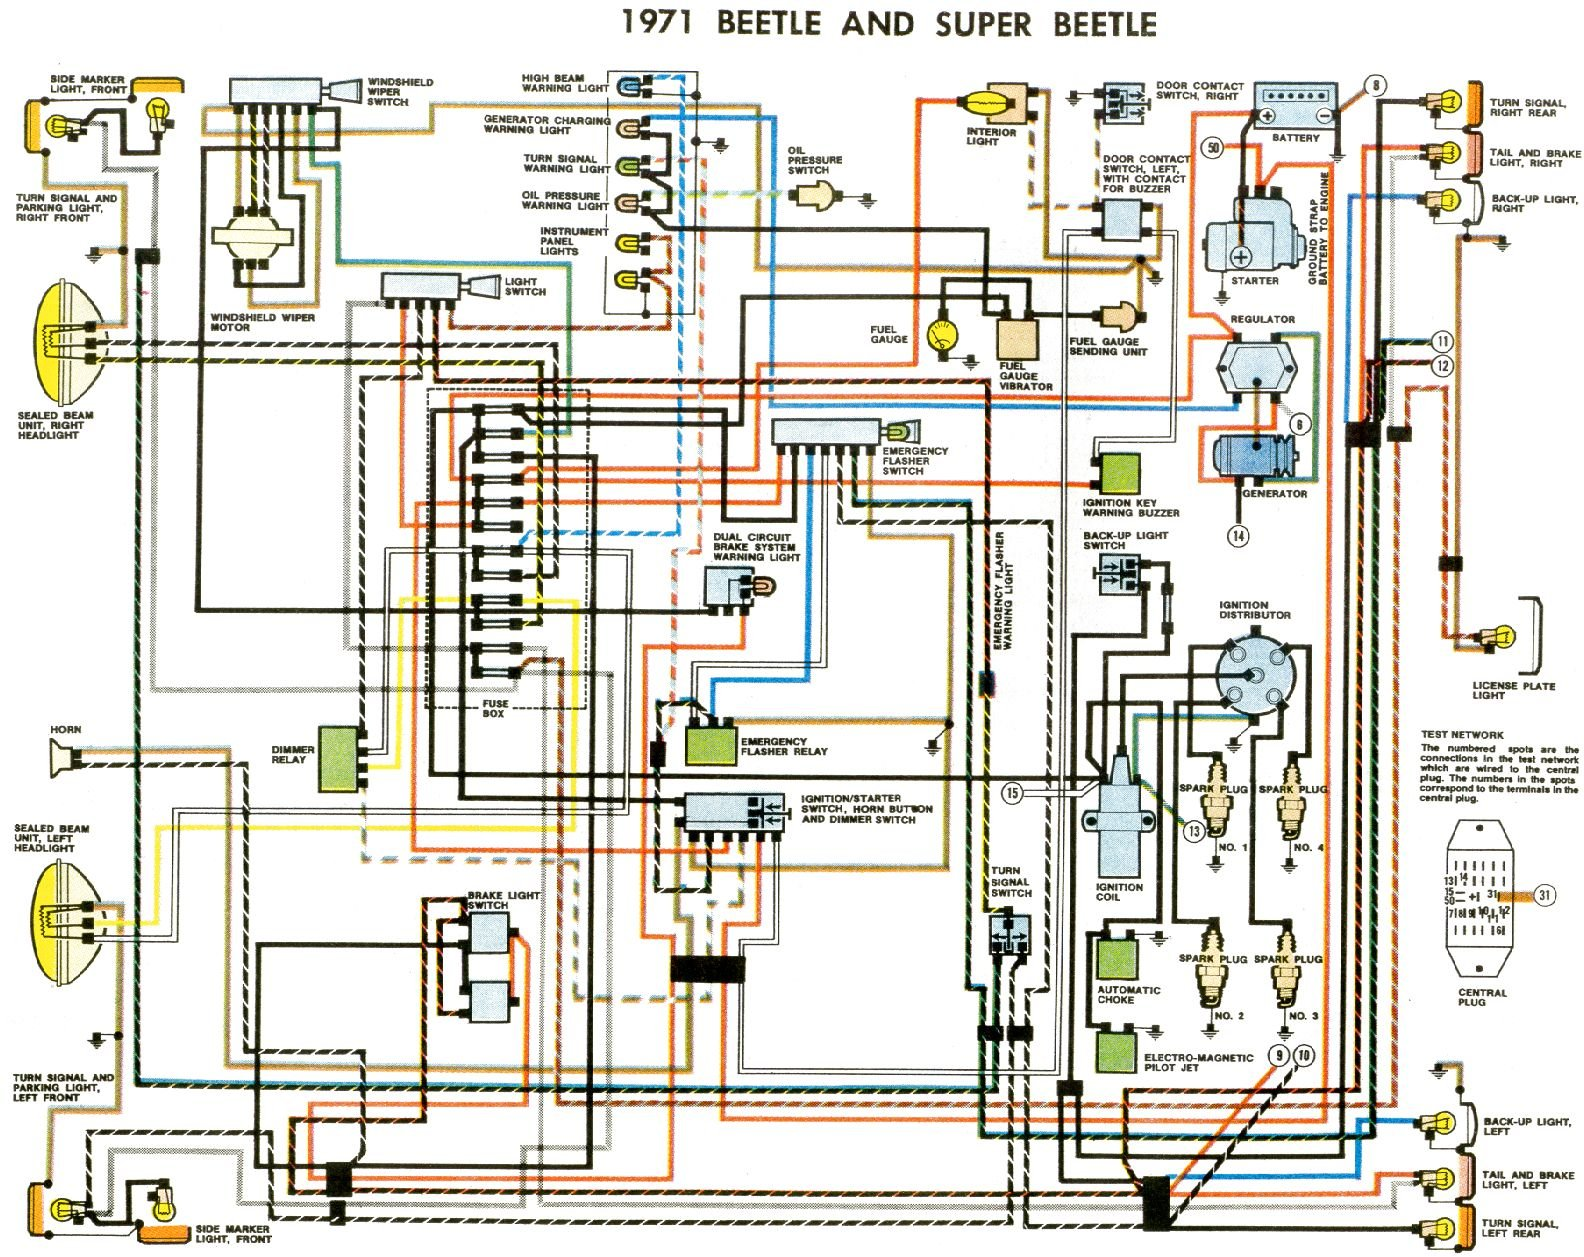 bug_71 1971 beetle wiring diagram (usa) thegoldenbug com 76 vw beetle wiring diagram at edmiracle.co